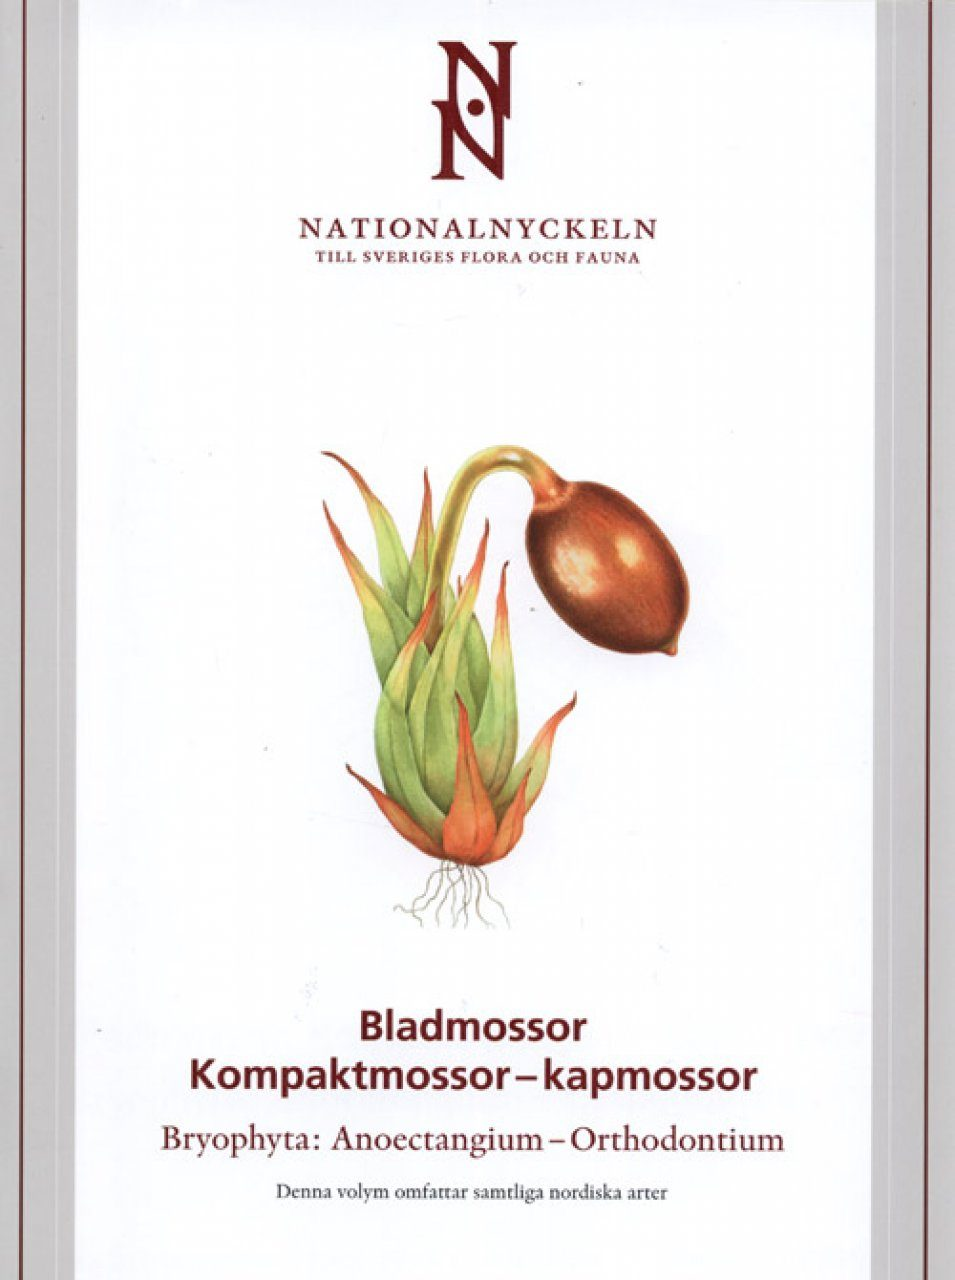 The Encyclopedia of the Swedish Flora and Fauna, Bladmossor, Kompaktmossor - Kapmossor [Swedish]